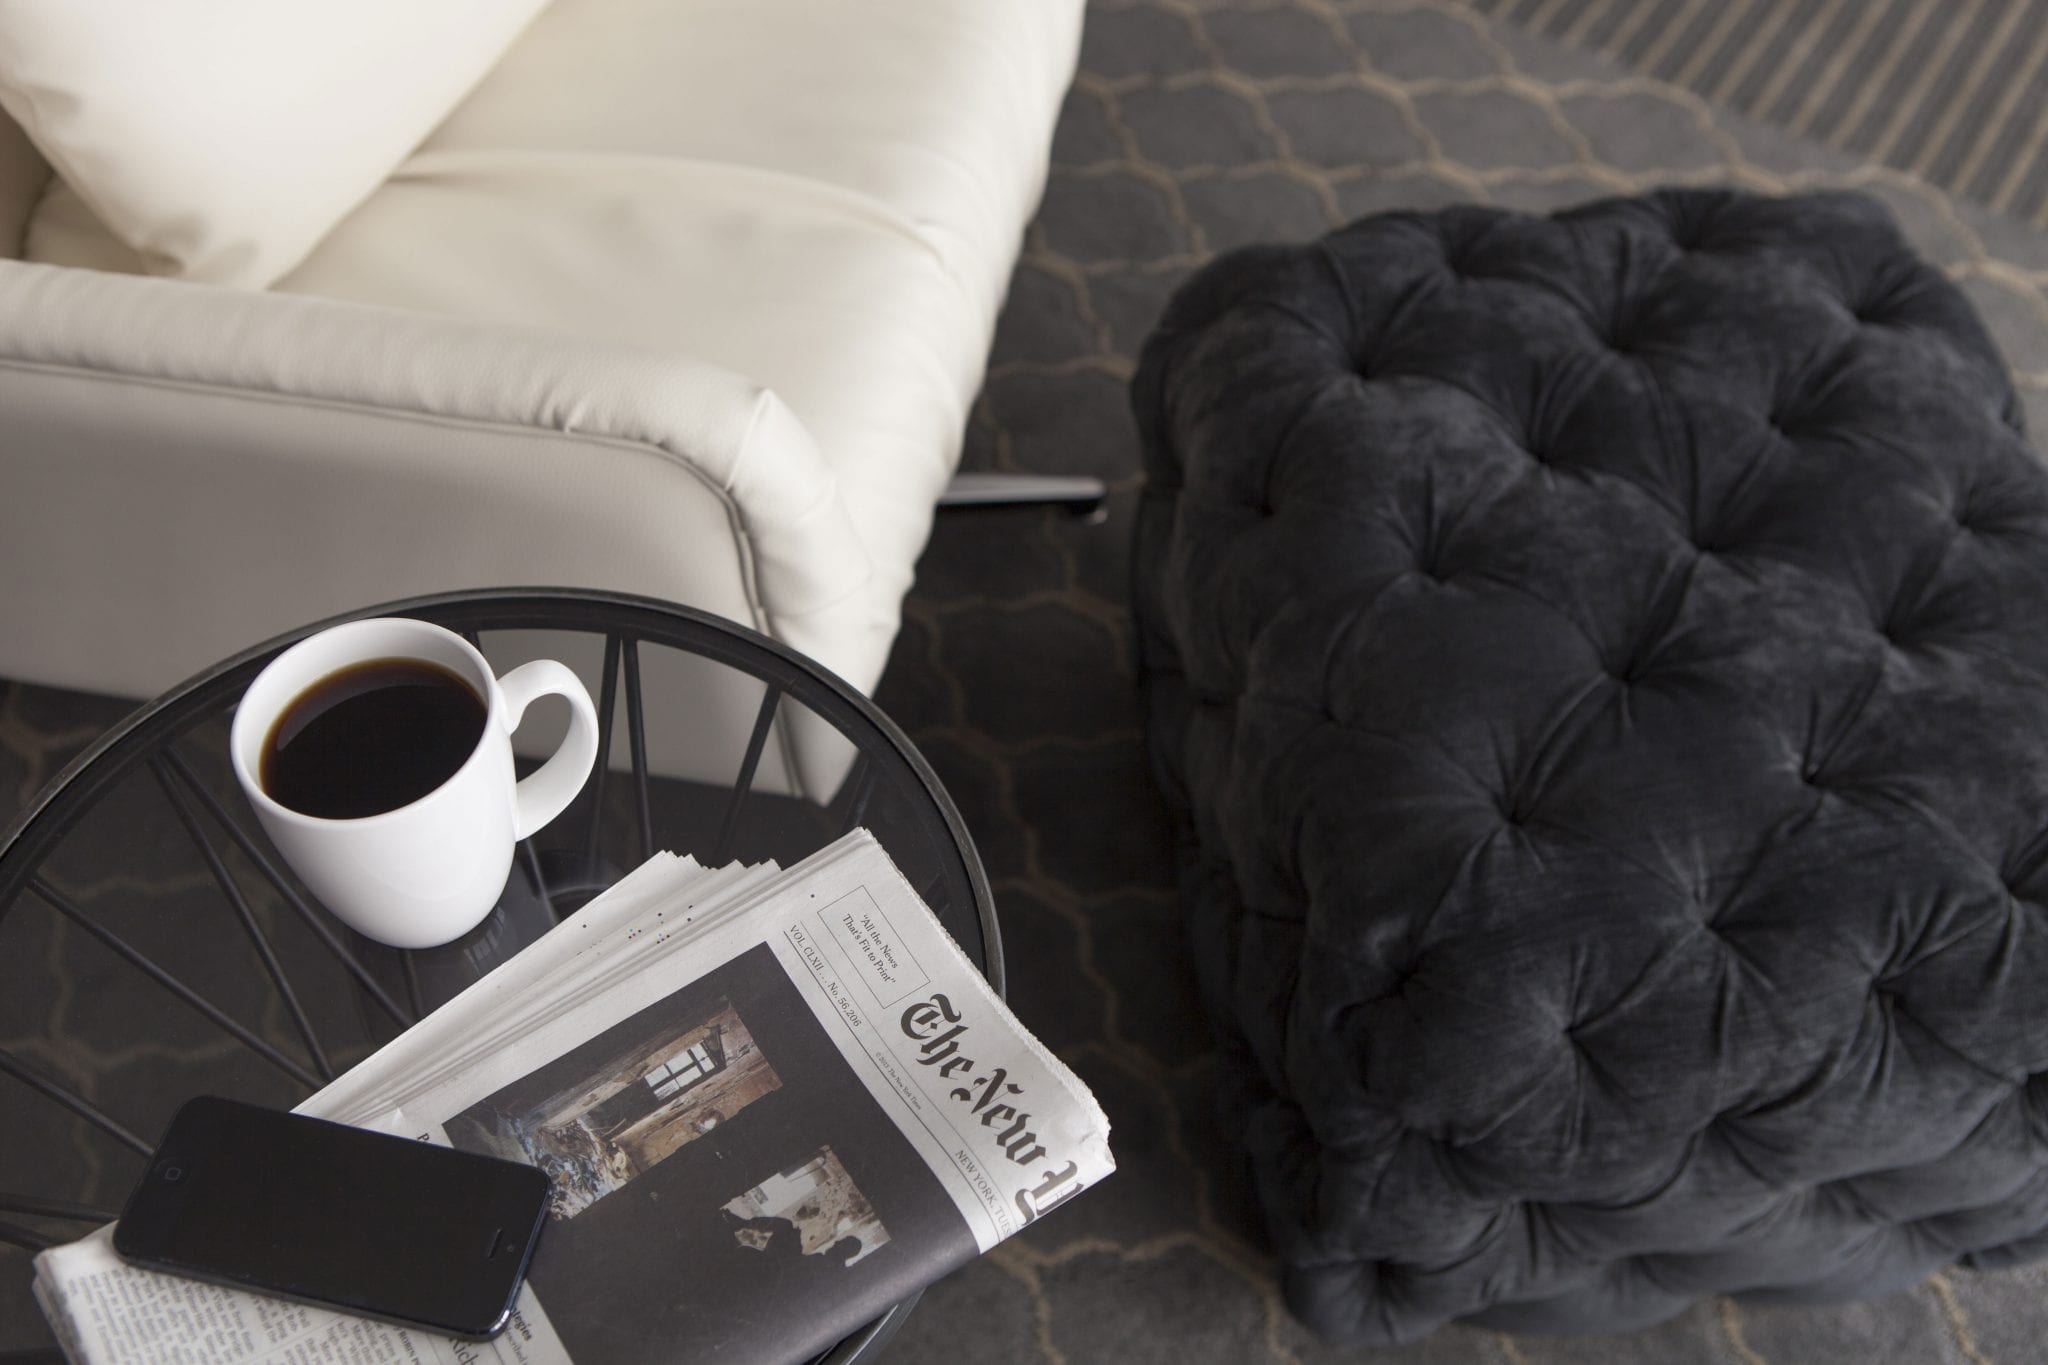 Coffee and a newspaper sit on the table next to a white couch.